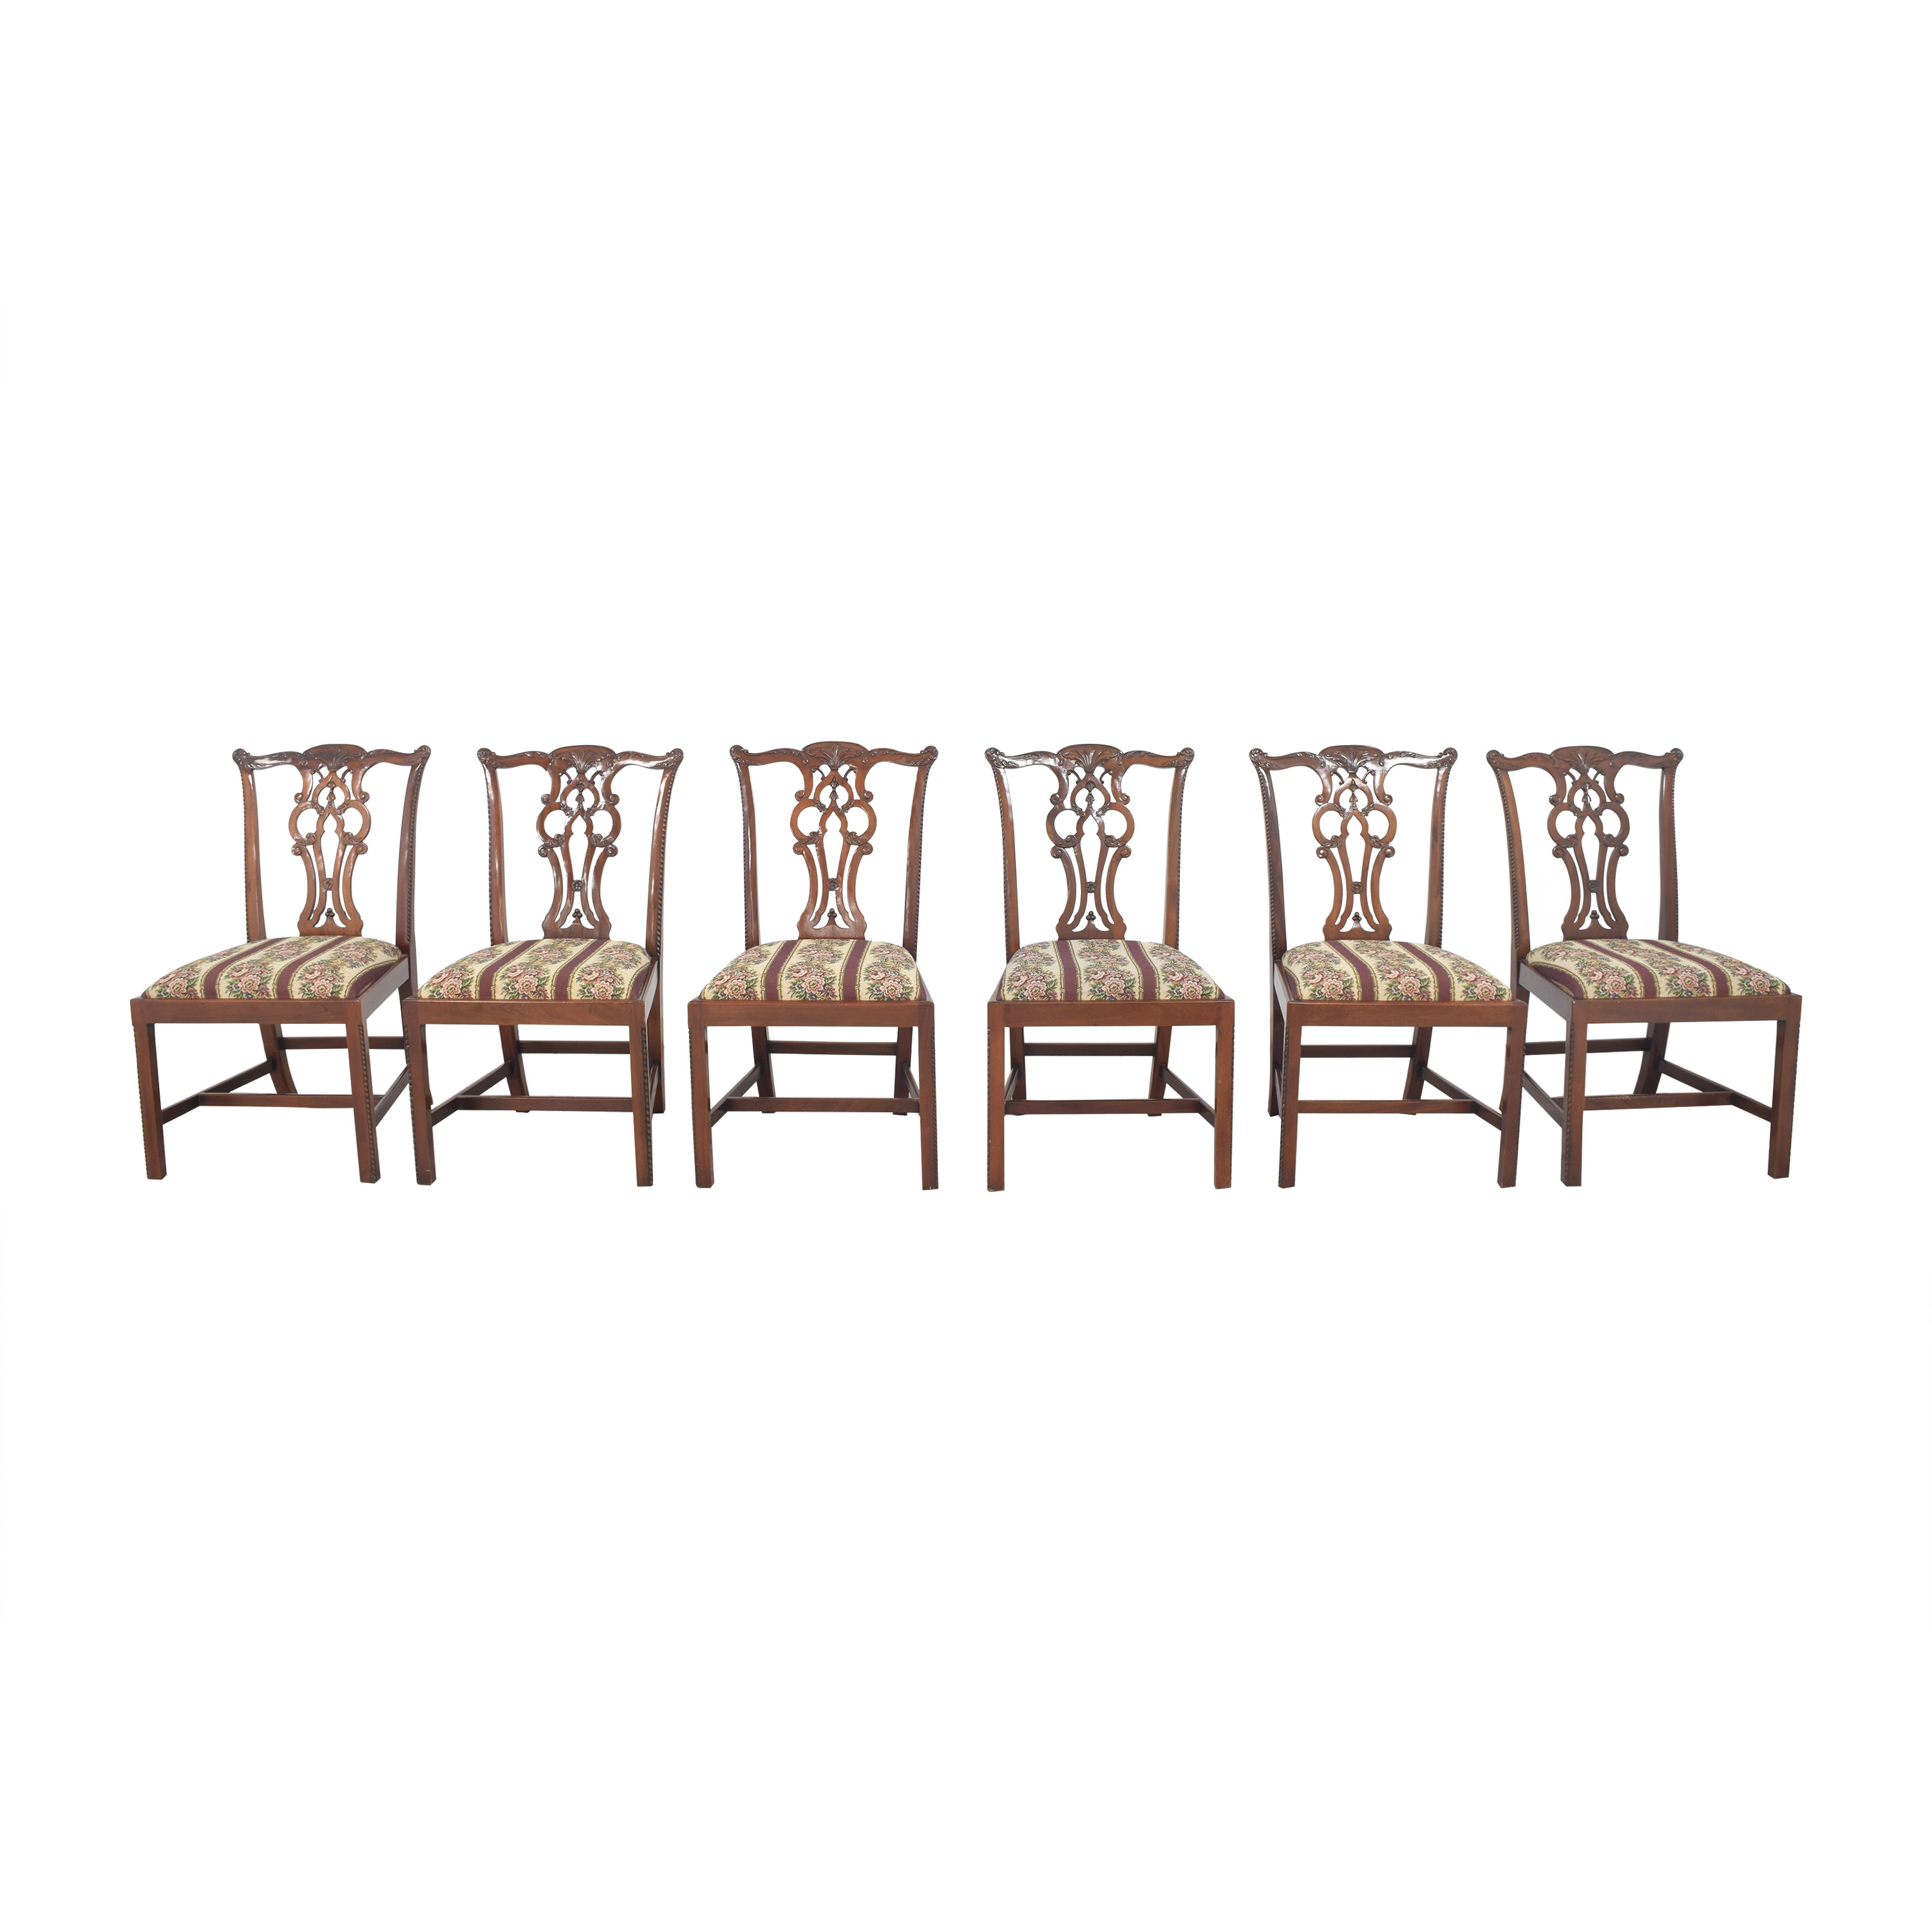 Maitland-Smith Maitland-Smith Chippendale Upholstered Dining Chairs on sale